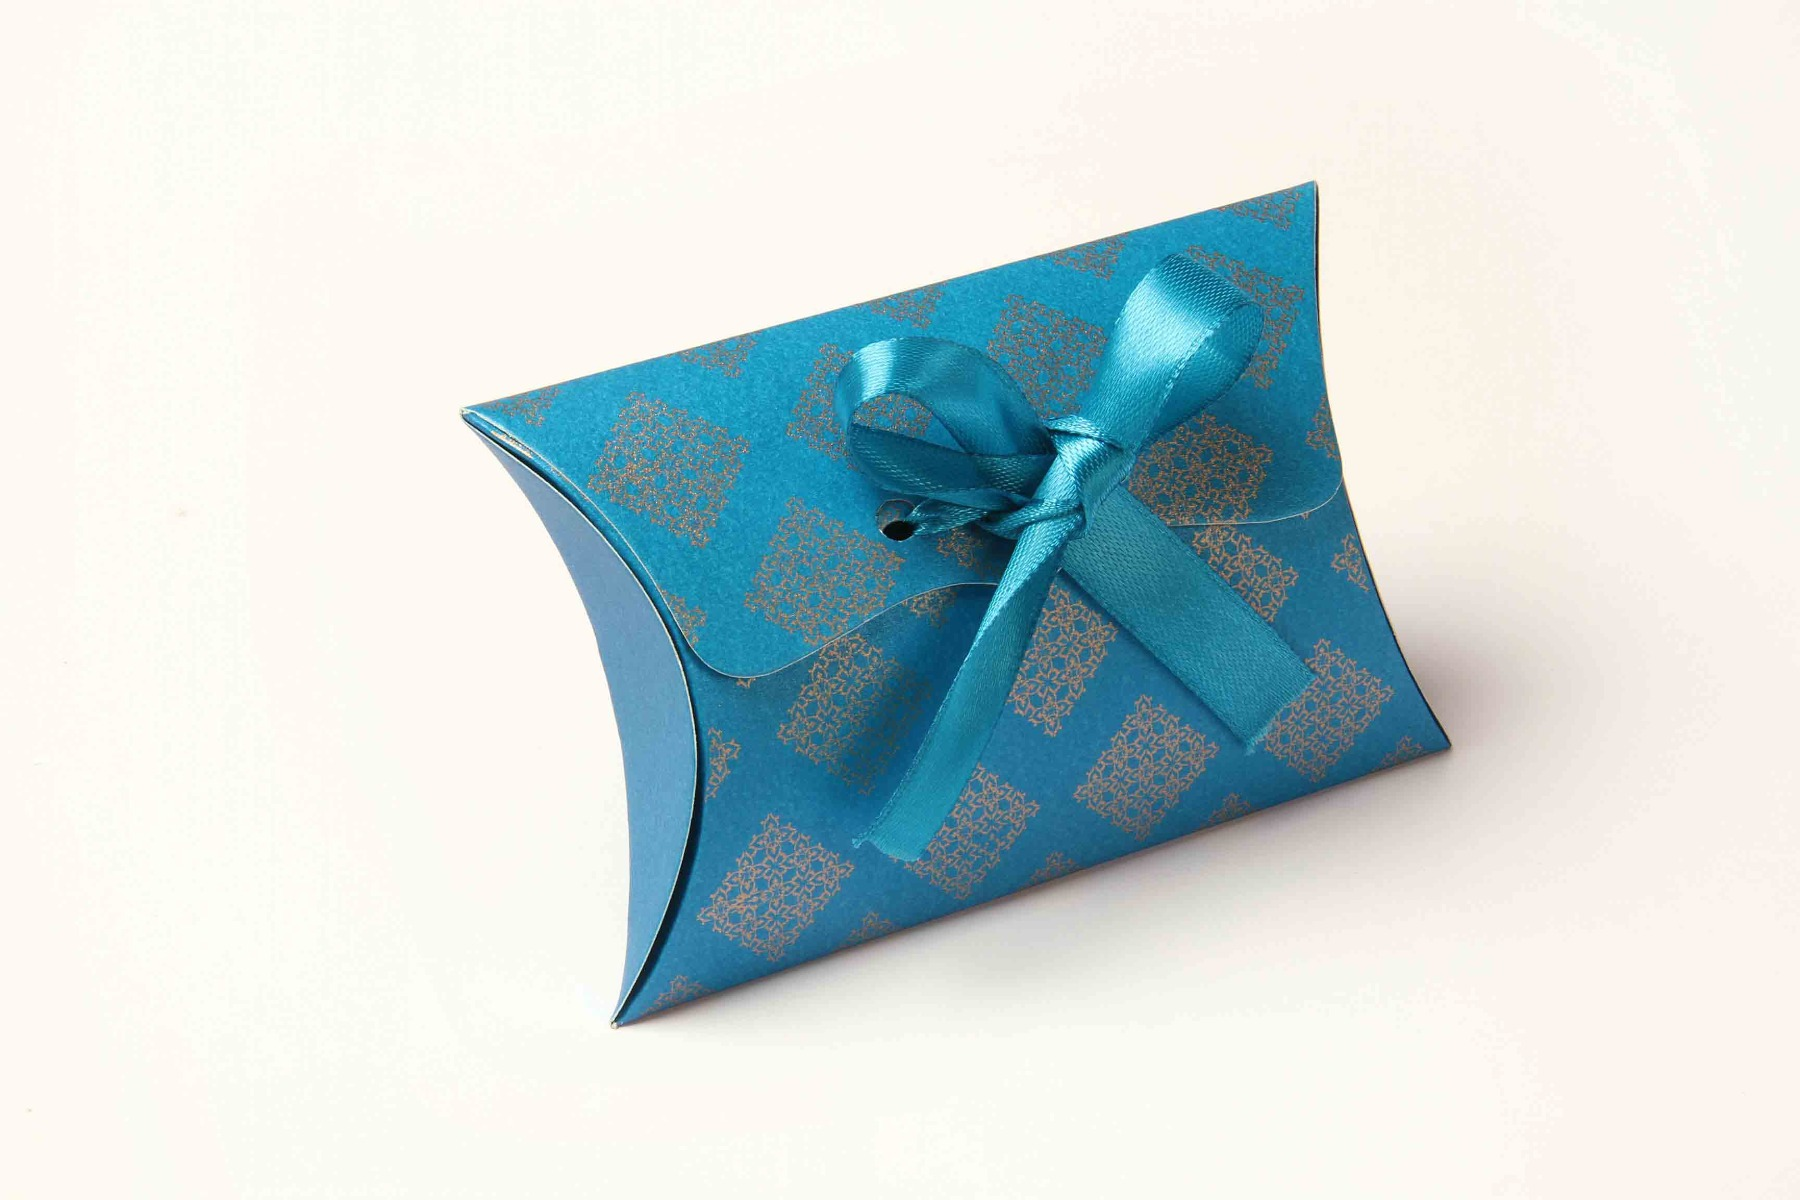 Pillow Favor Box No 9 - Firoze Blue-8657